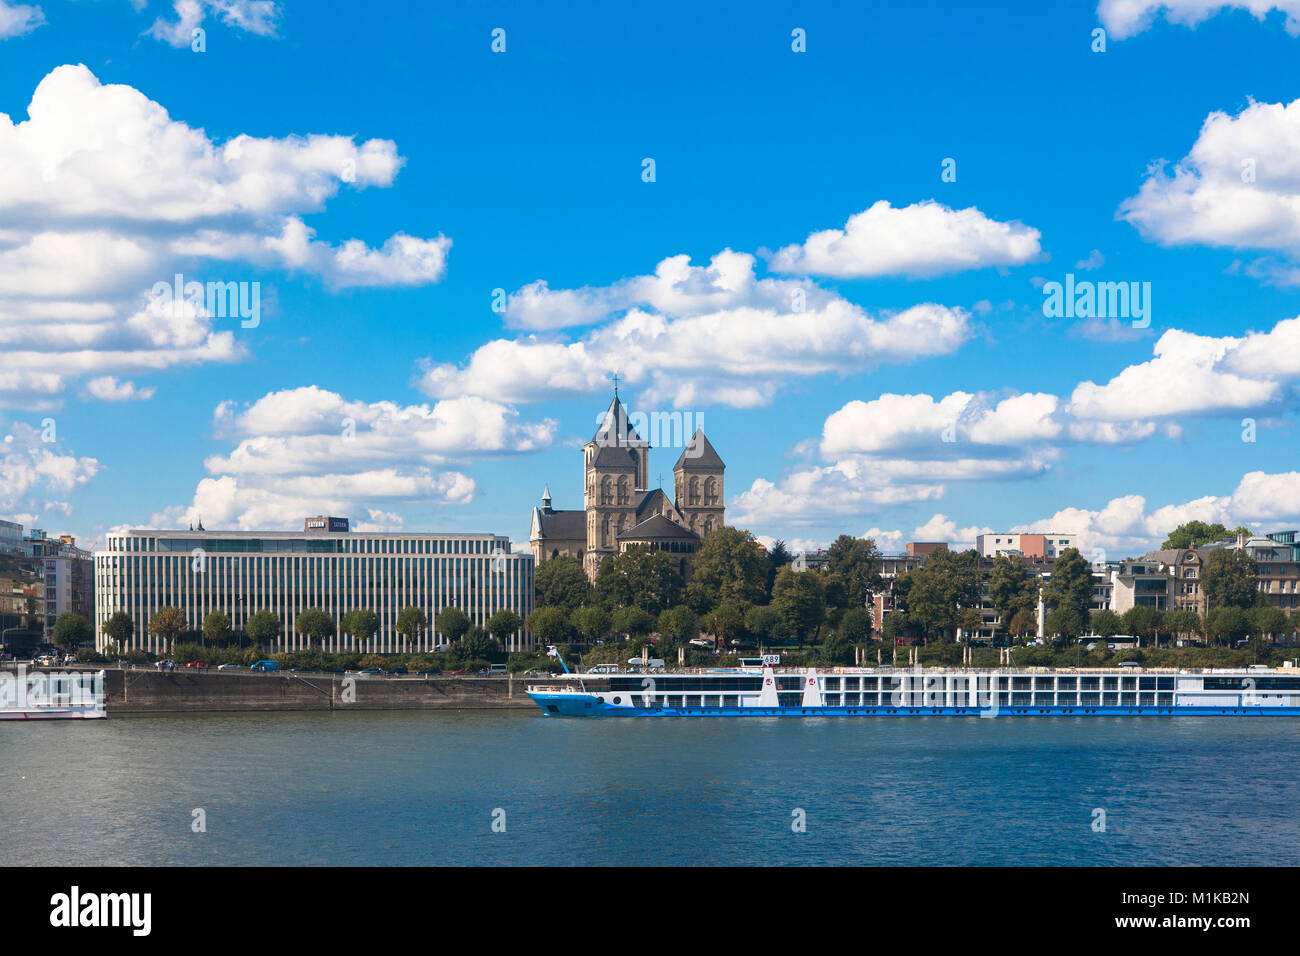 Germany, Cologne, Institut der deutschen Wirtschaft Koeln or Cologne Institute for Economic Research at the street - Stock Image